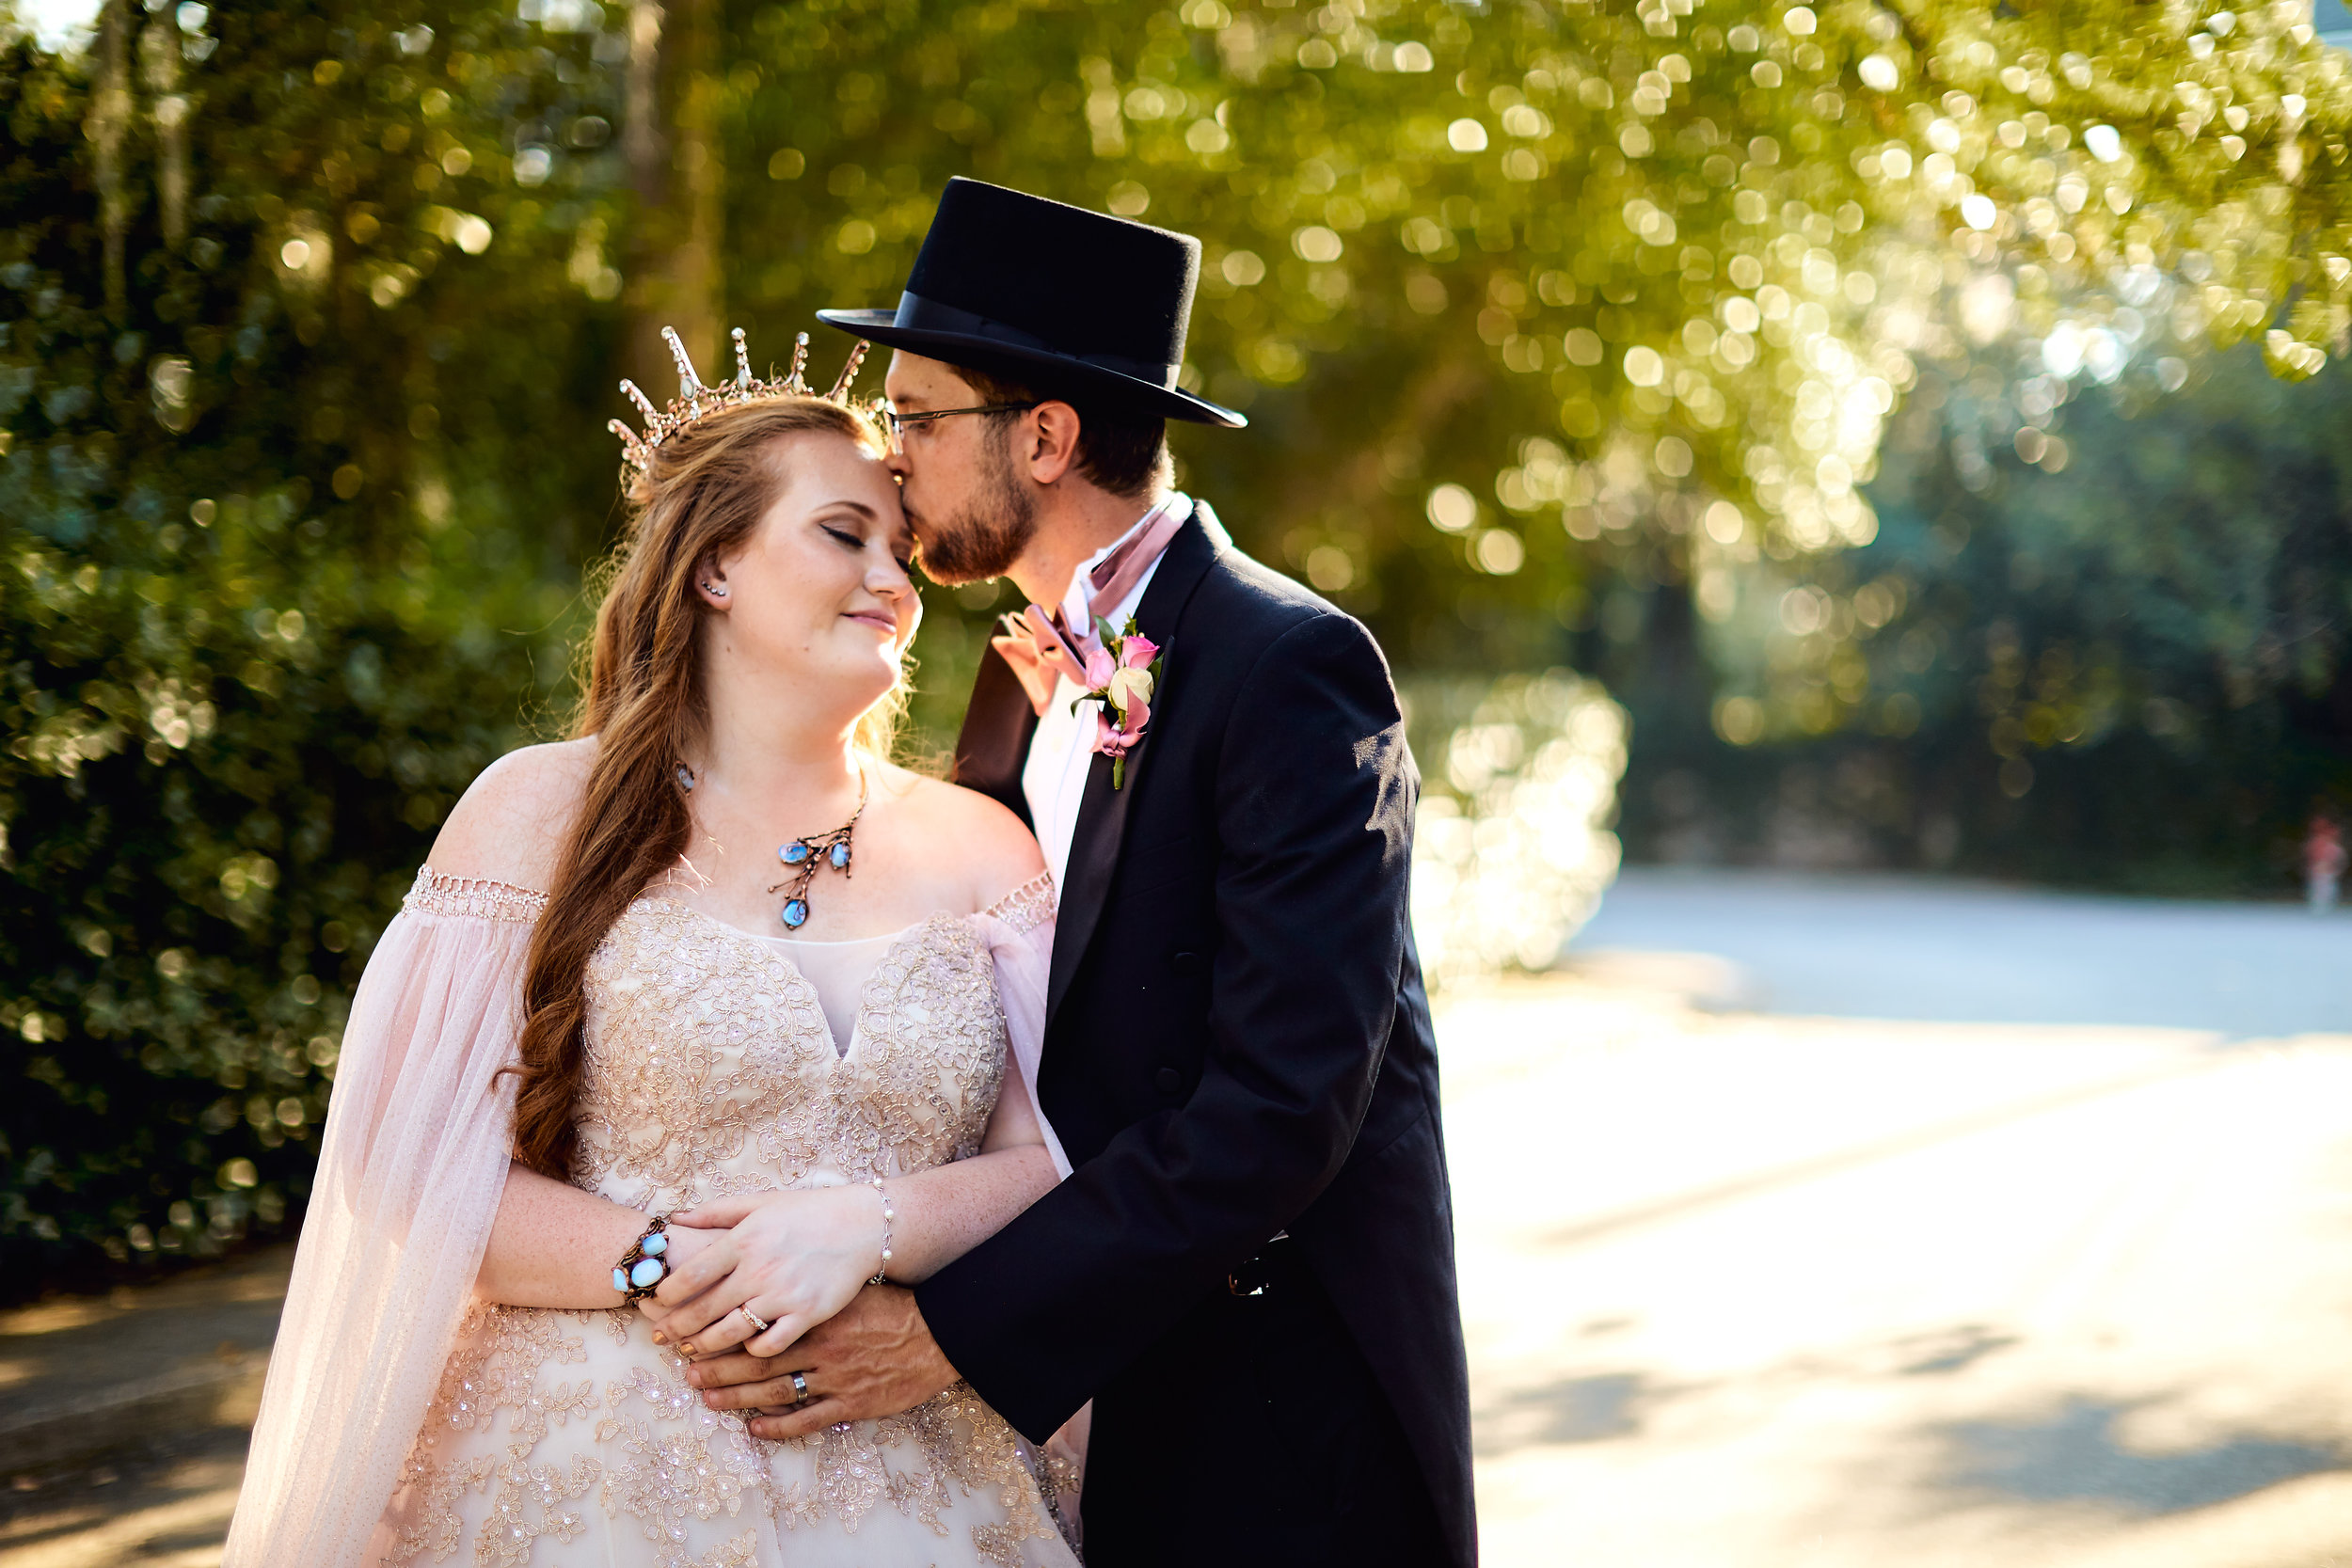 Whimsical golden hour portrait of offbeat bride and groom, where bride wears blush dress with DIY cape, and groom wears top hat. on the street by downtown Beaufort, South Carolina.